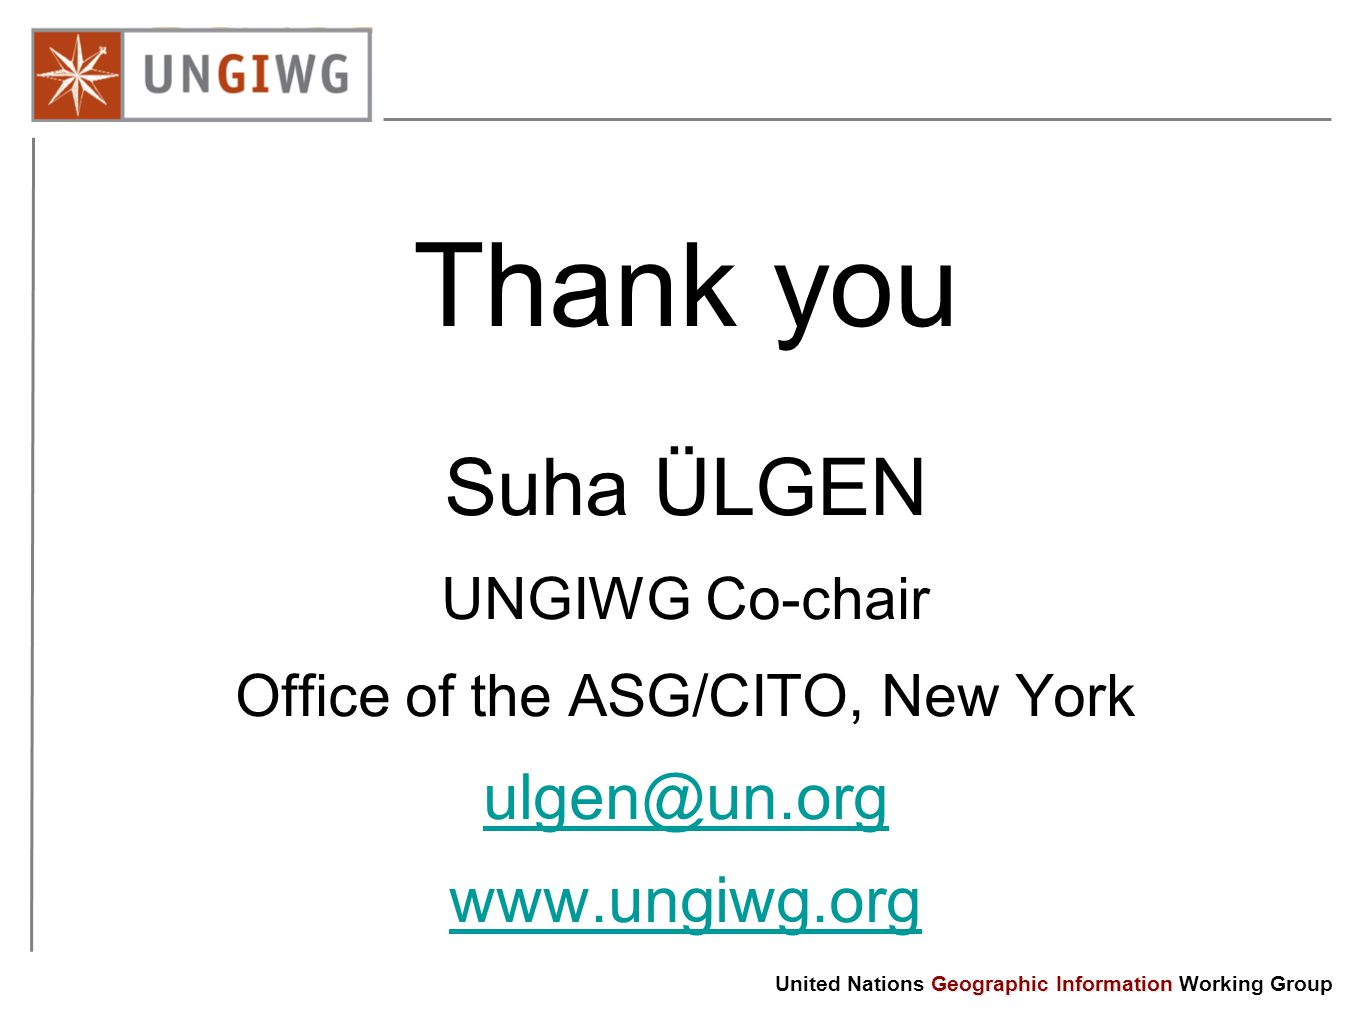 Thank you Suha ÜLGEN UNGIWG Co-chair Office of the ASG/CITO, New York